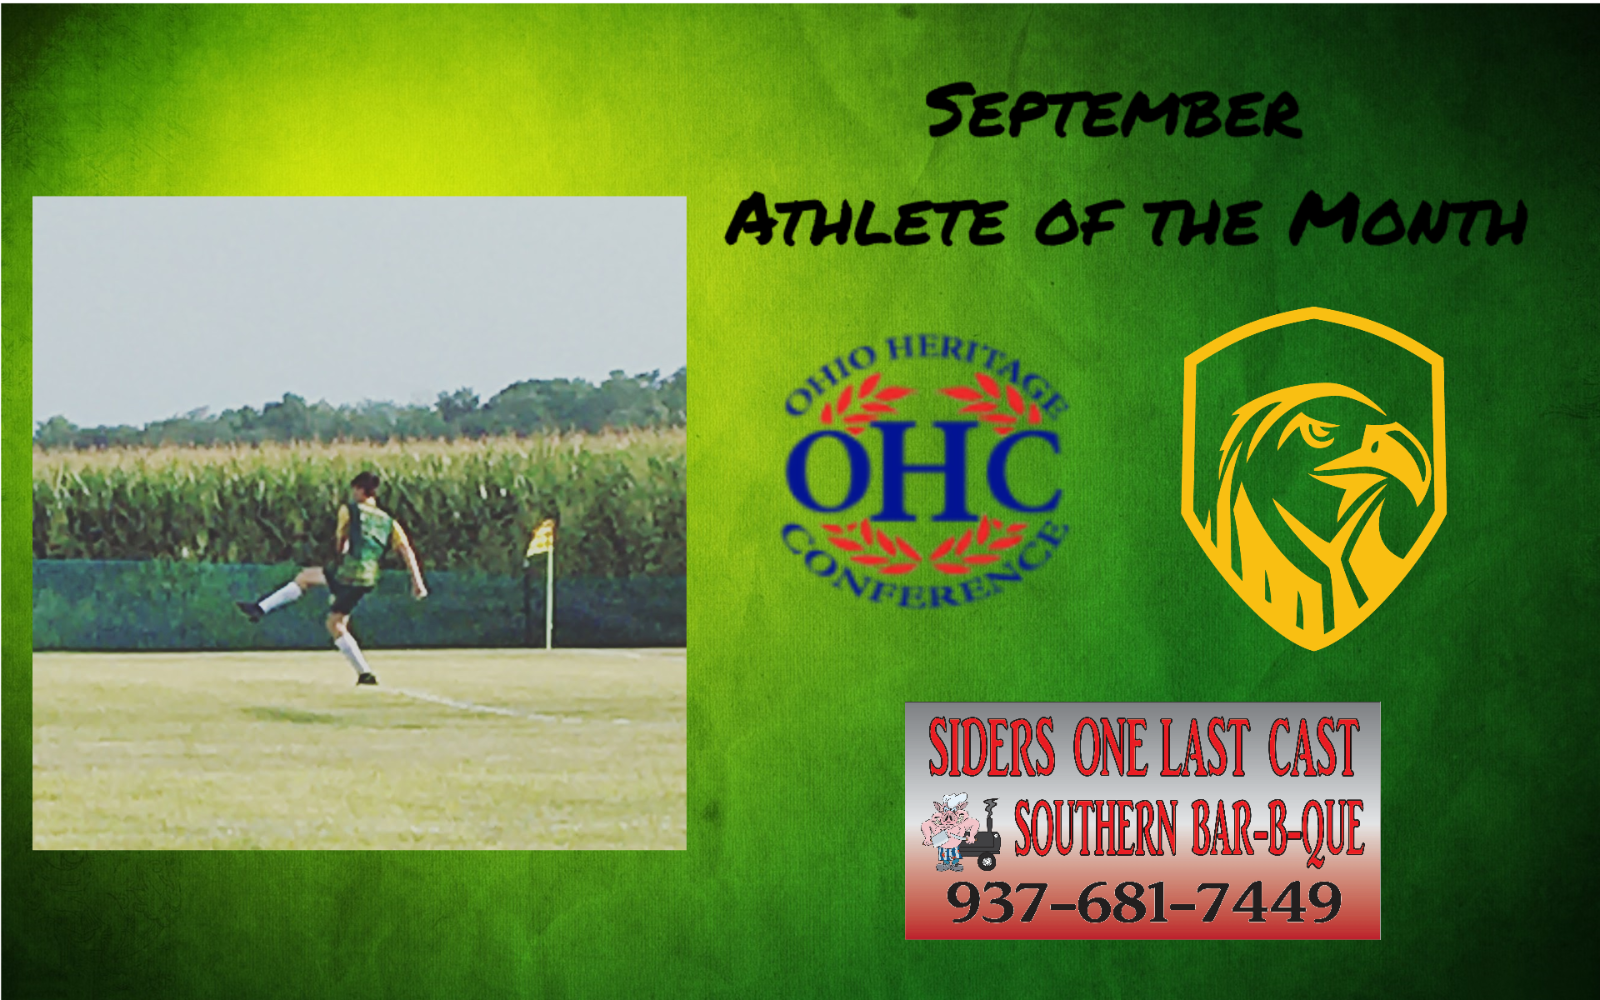 Cahill Earns September OHC Athlete of the Month